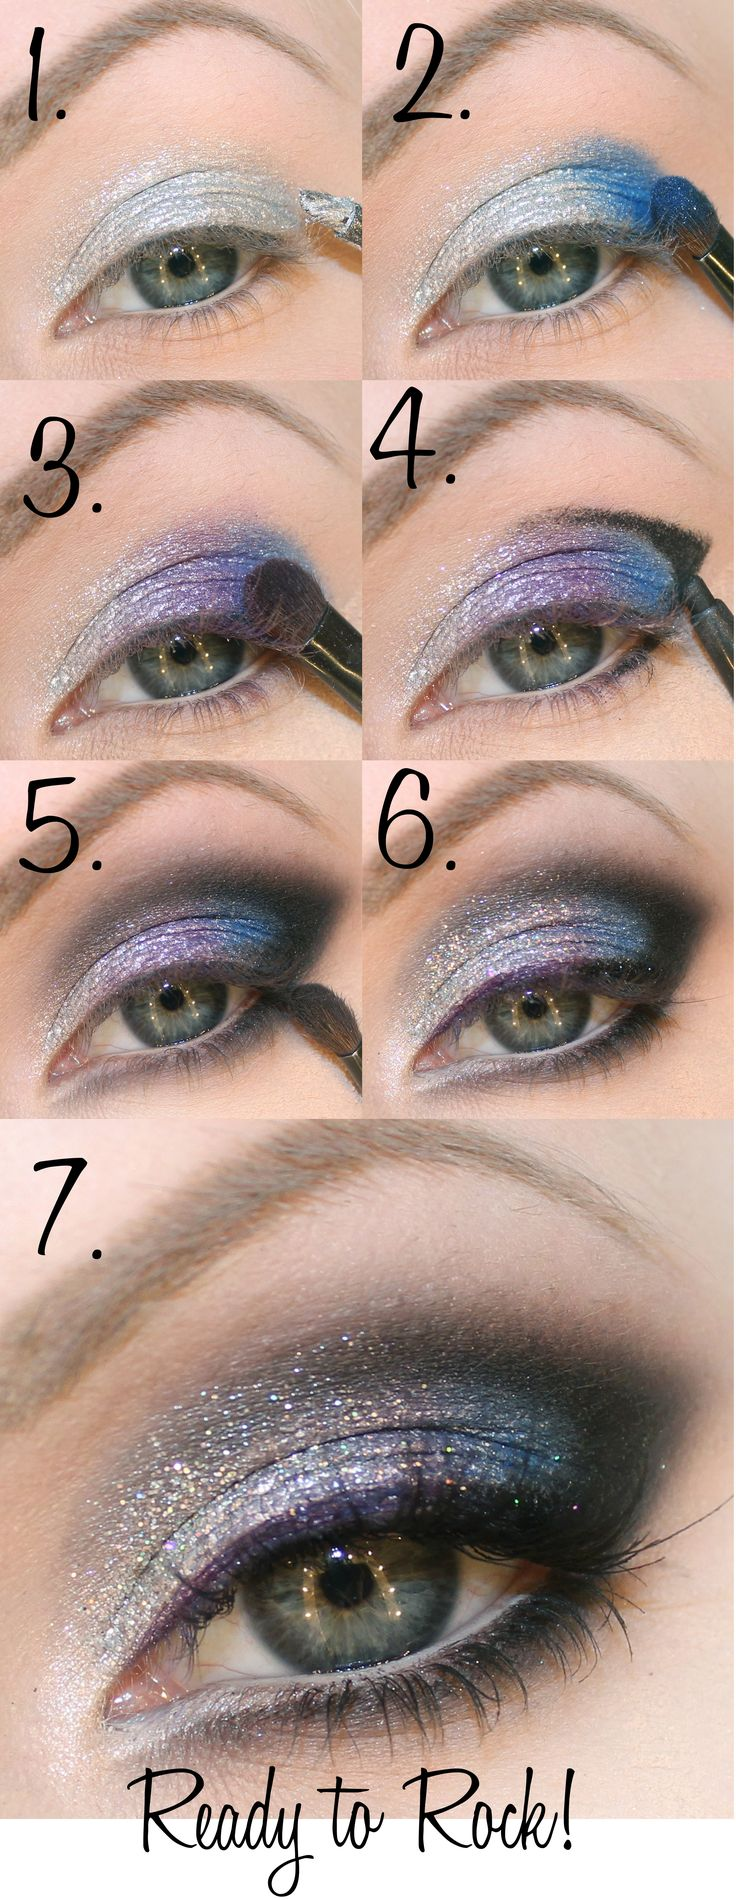 sparkly New Year's makeup